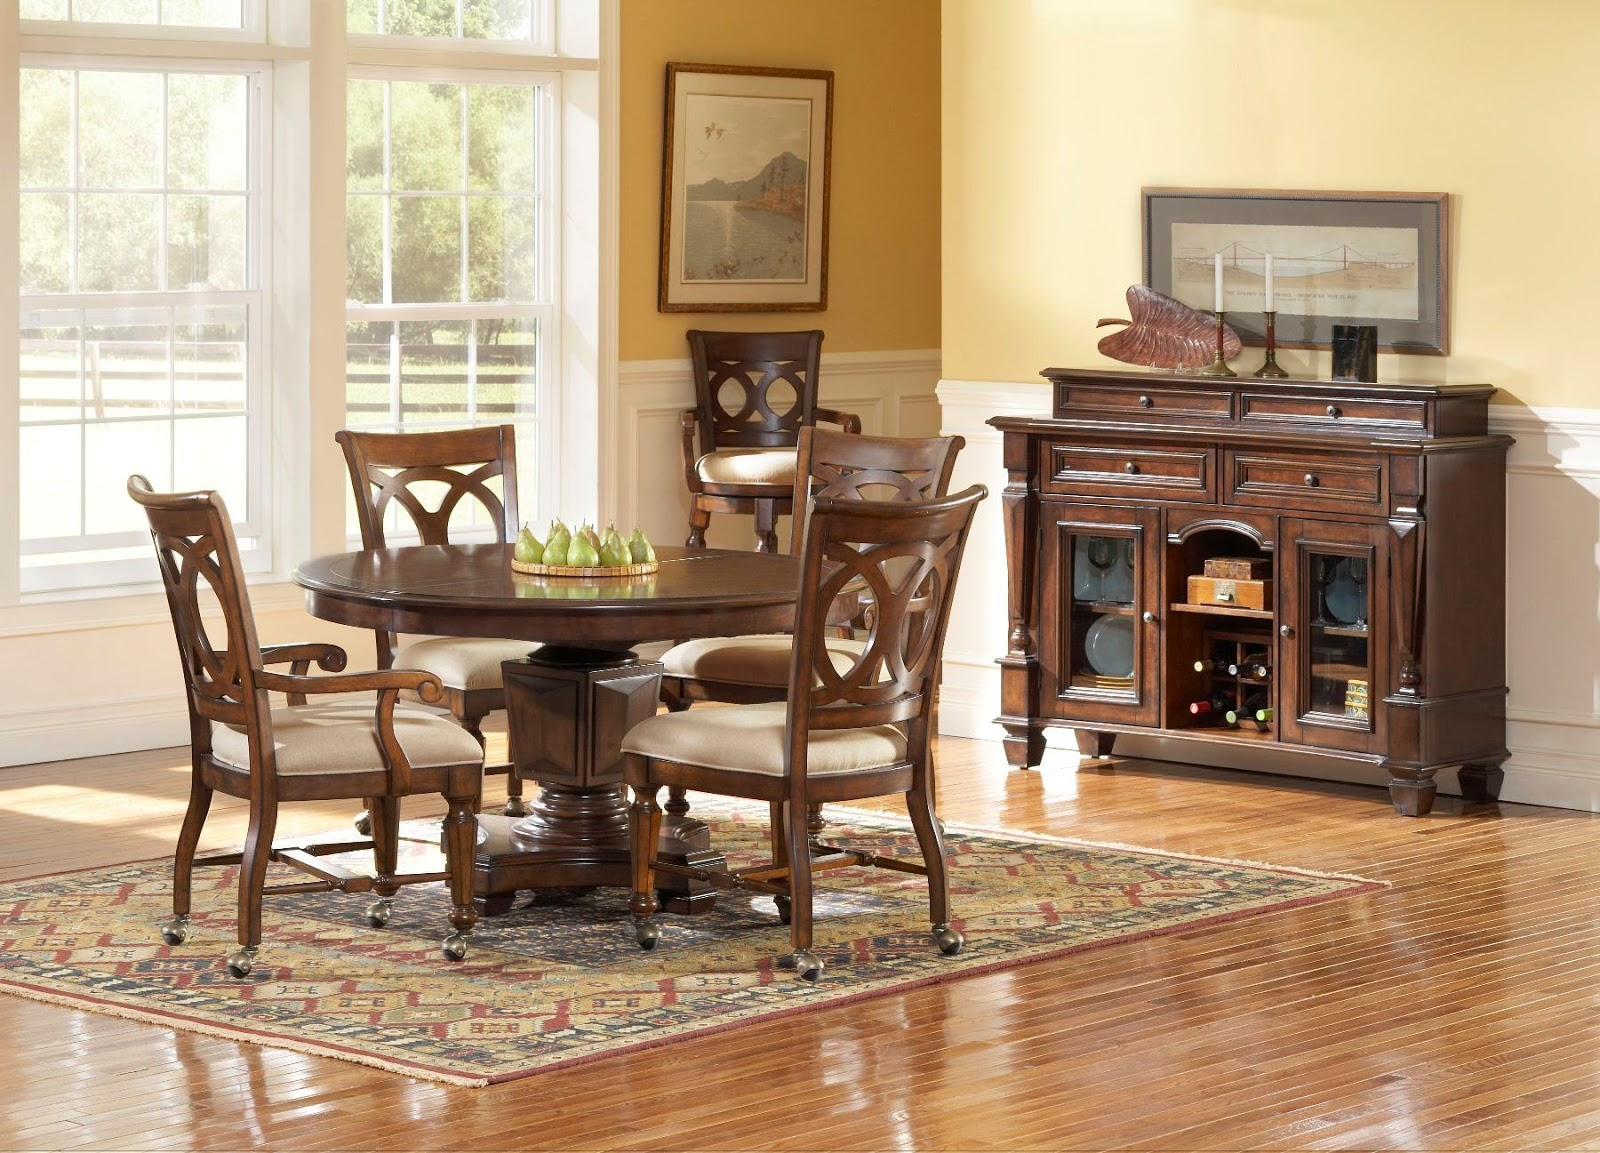 Dining Room Furniture Rustic Inspirational Of Home Interiors And Garden Rustic